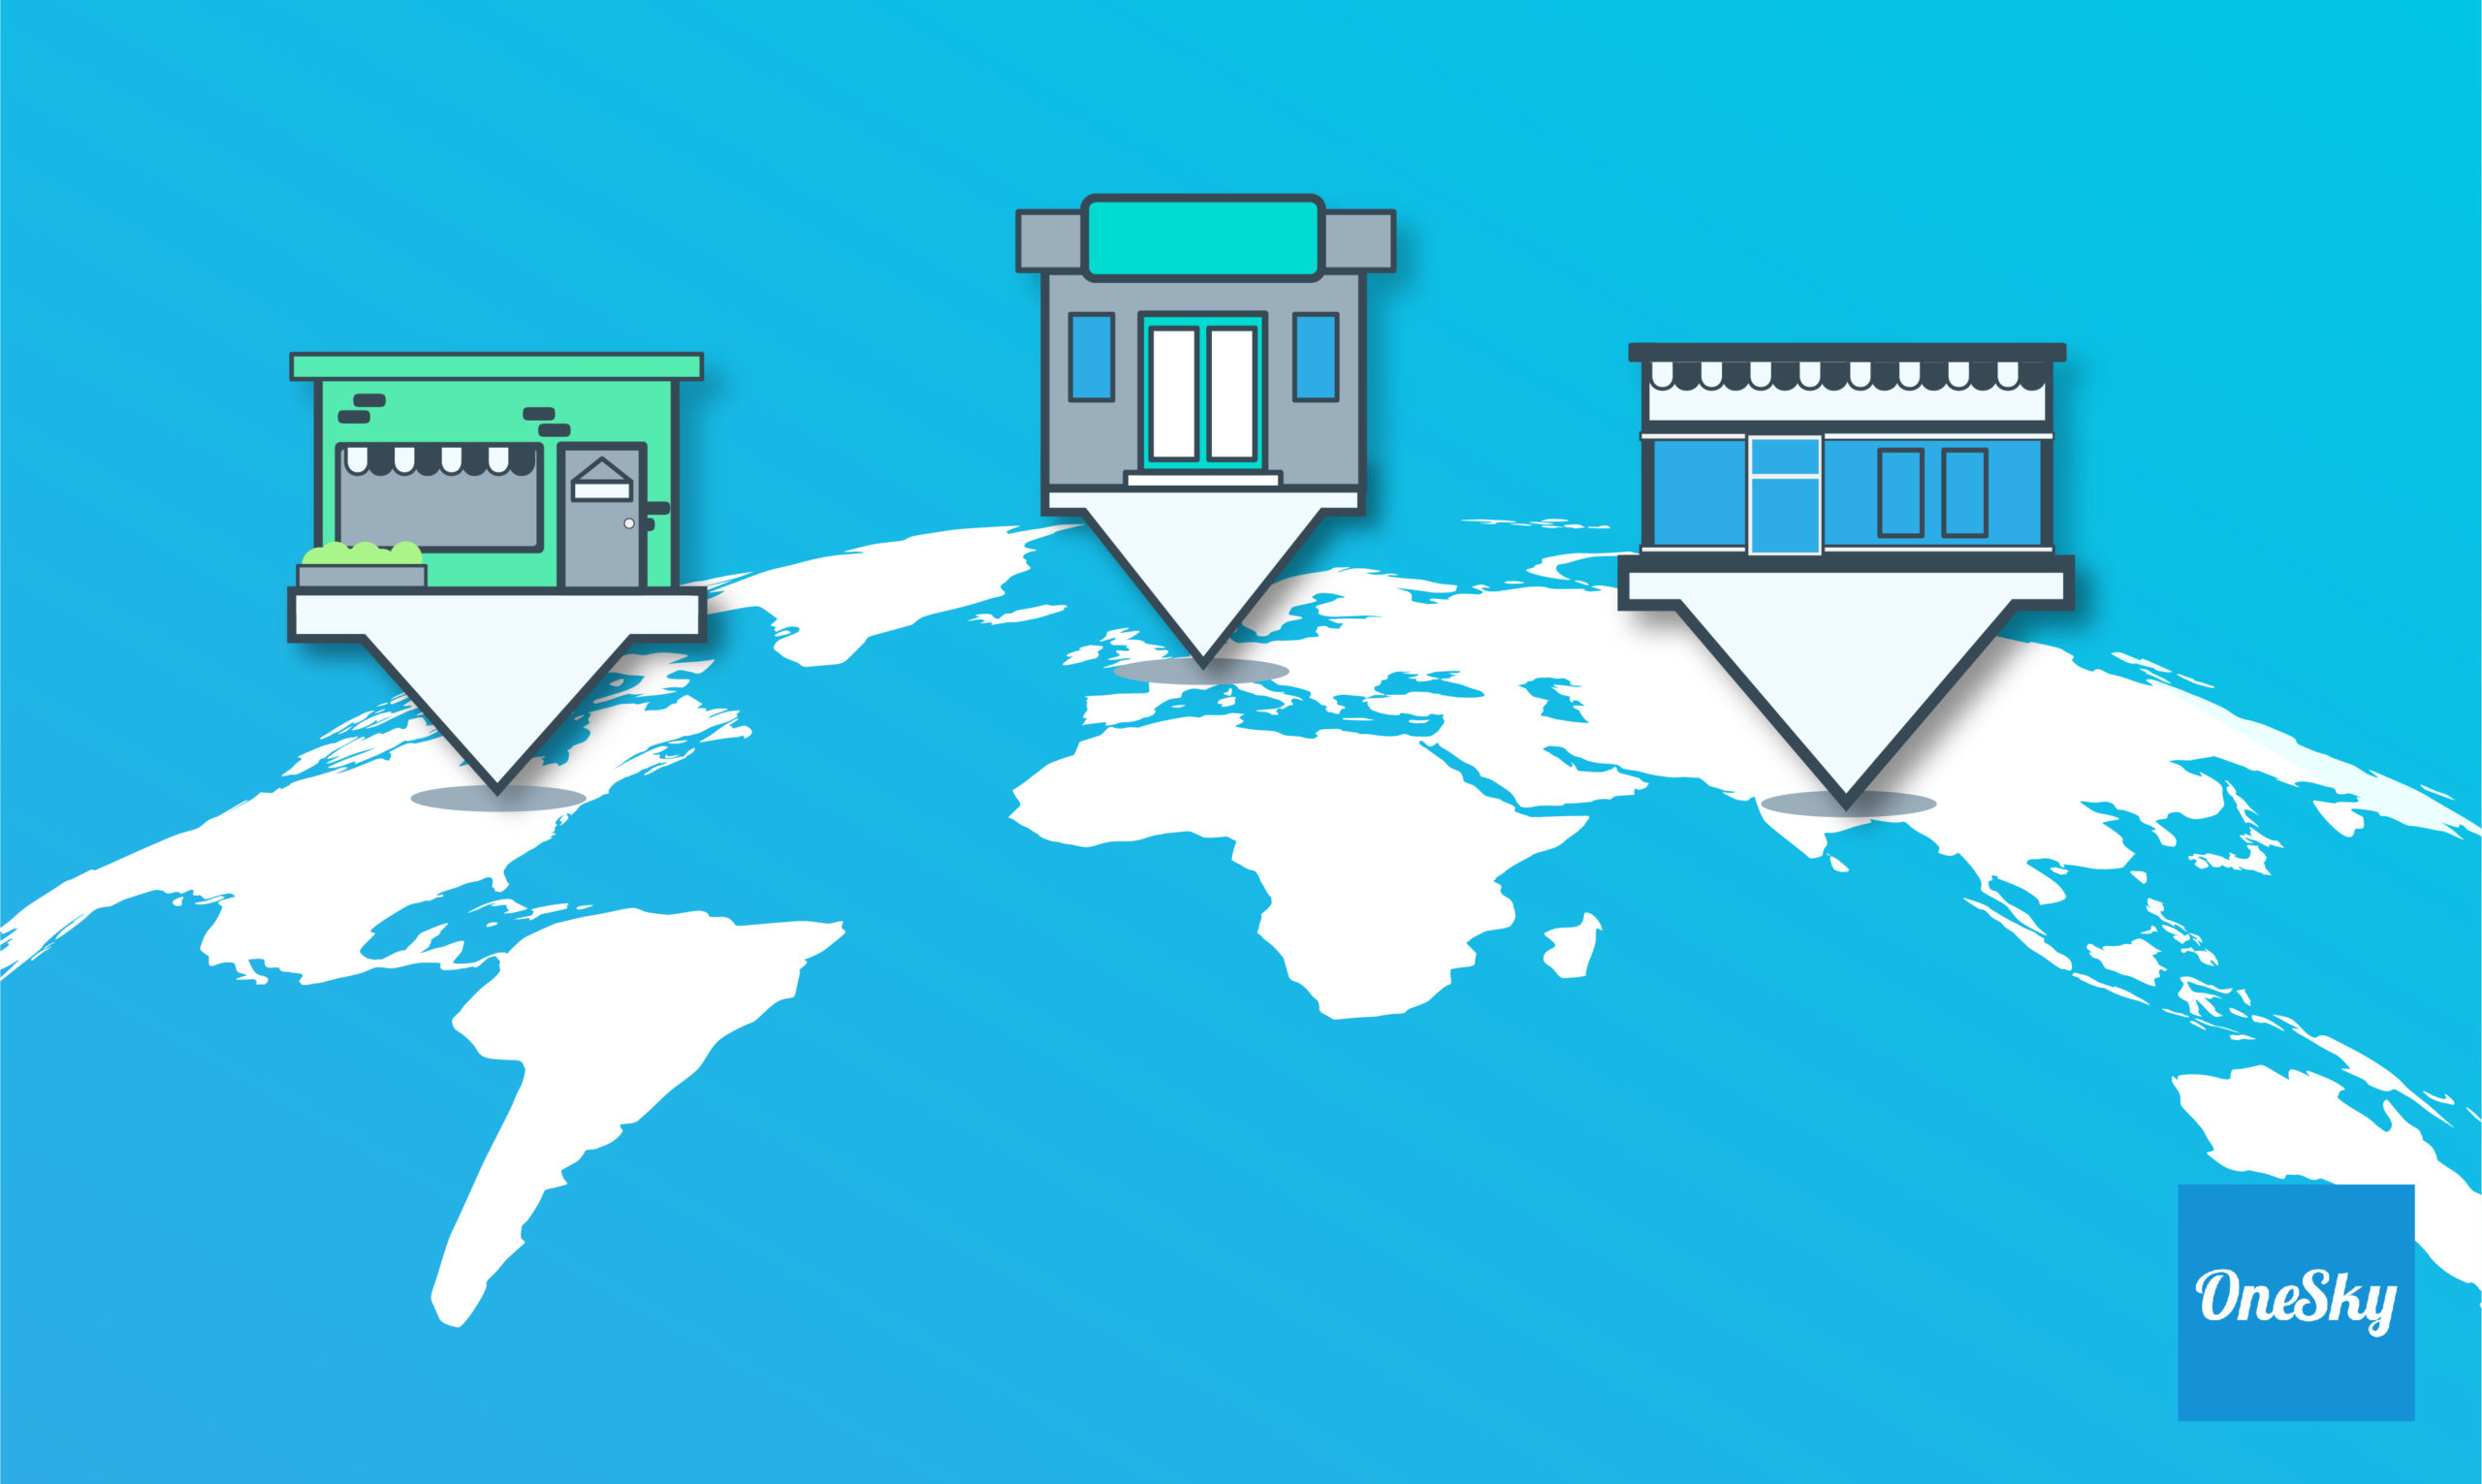 The 10 Best Strategies for Entering Foreign Markets